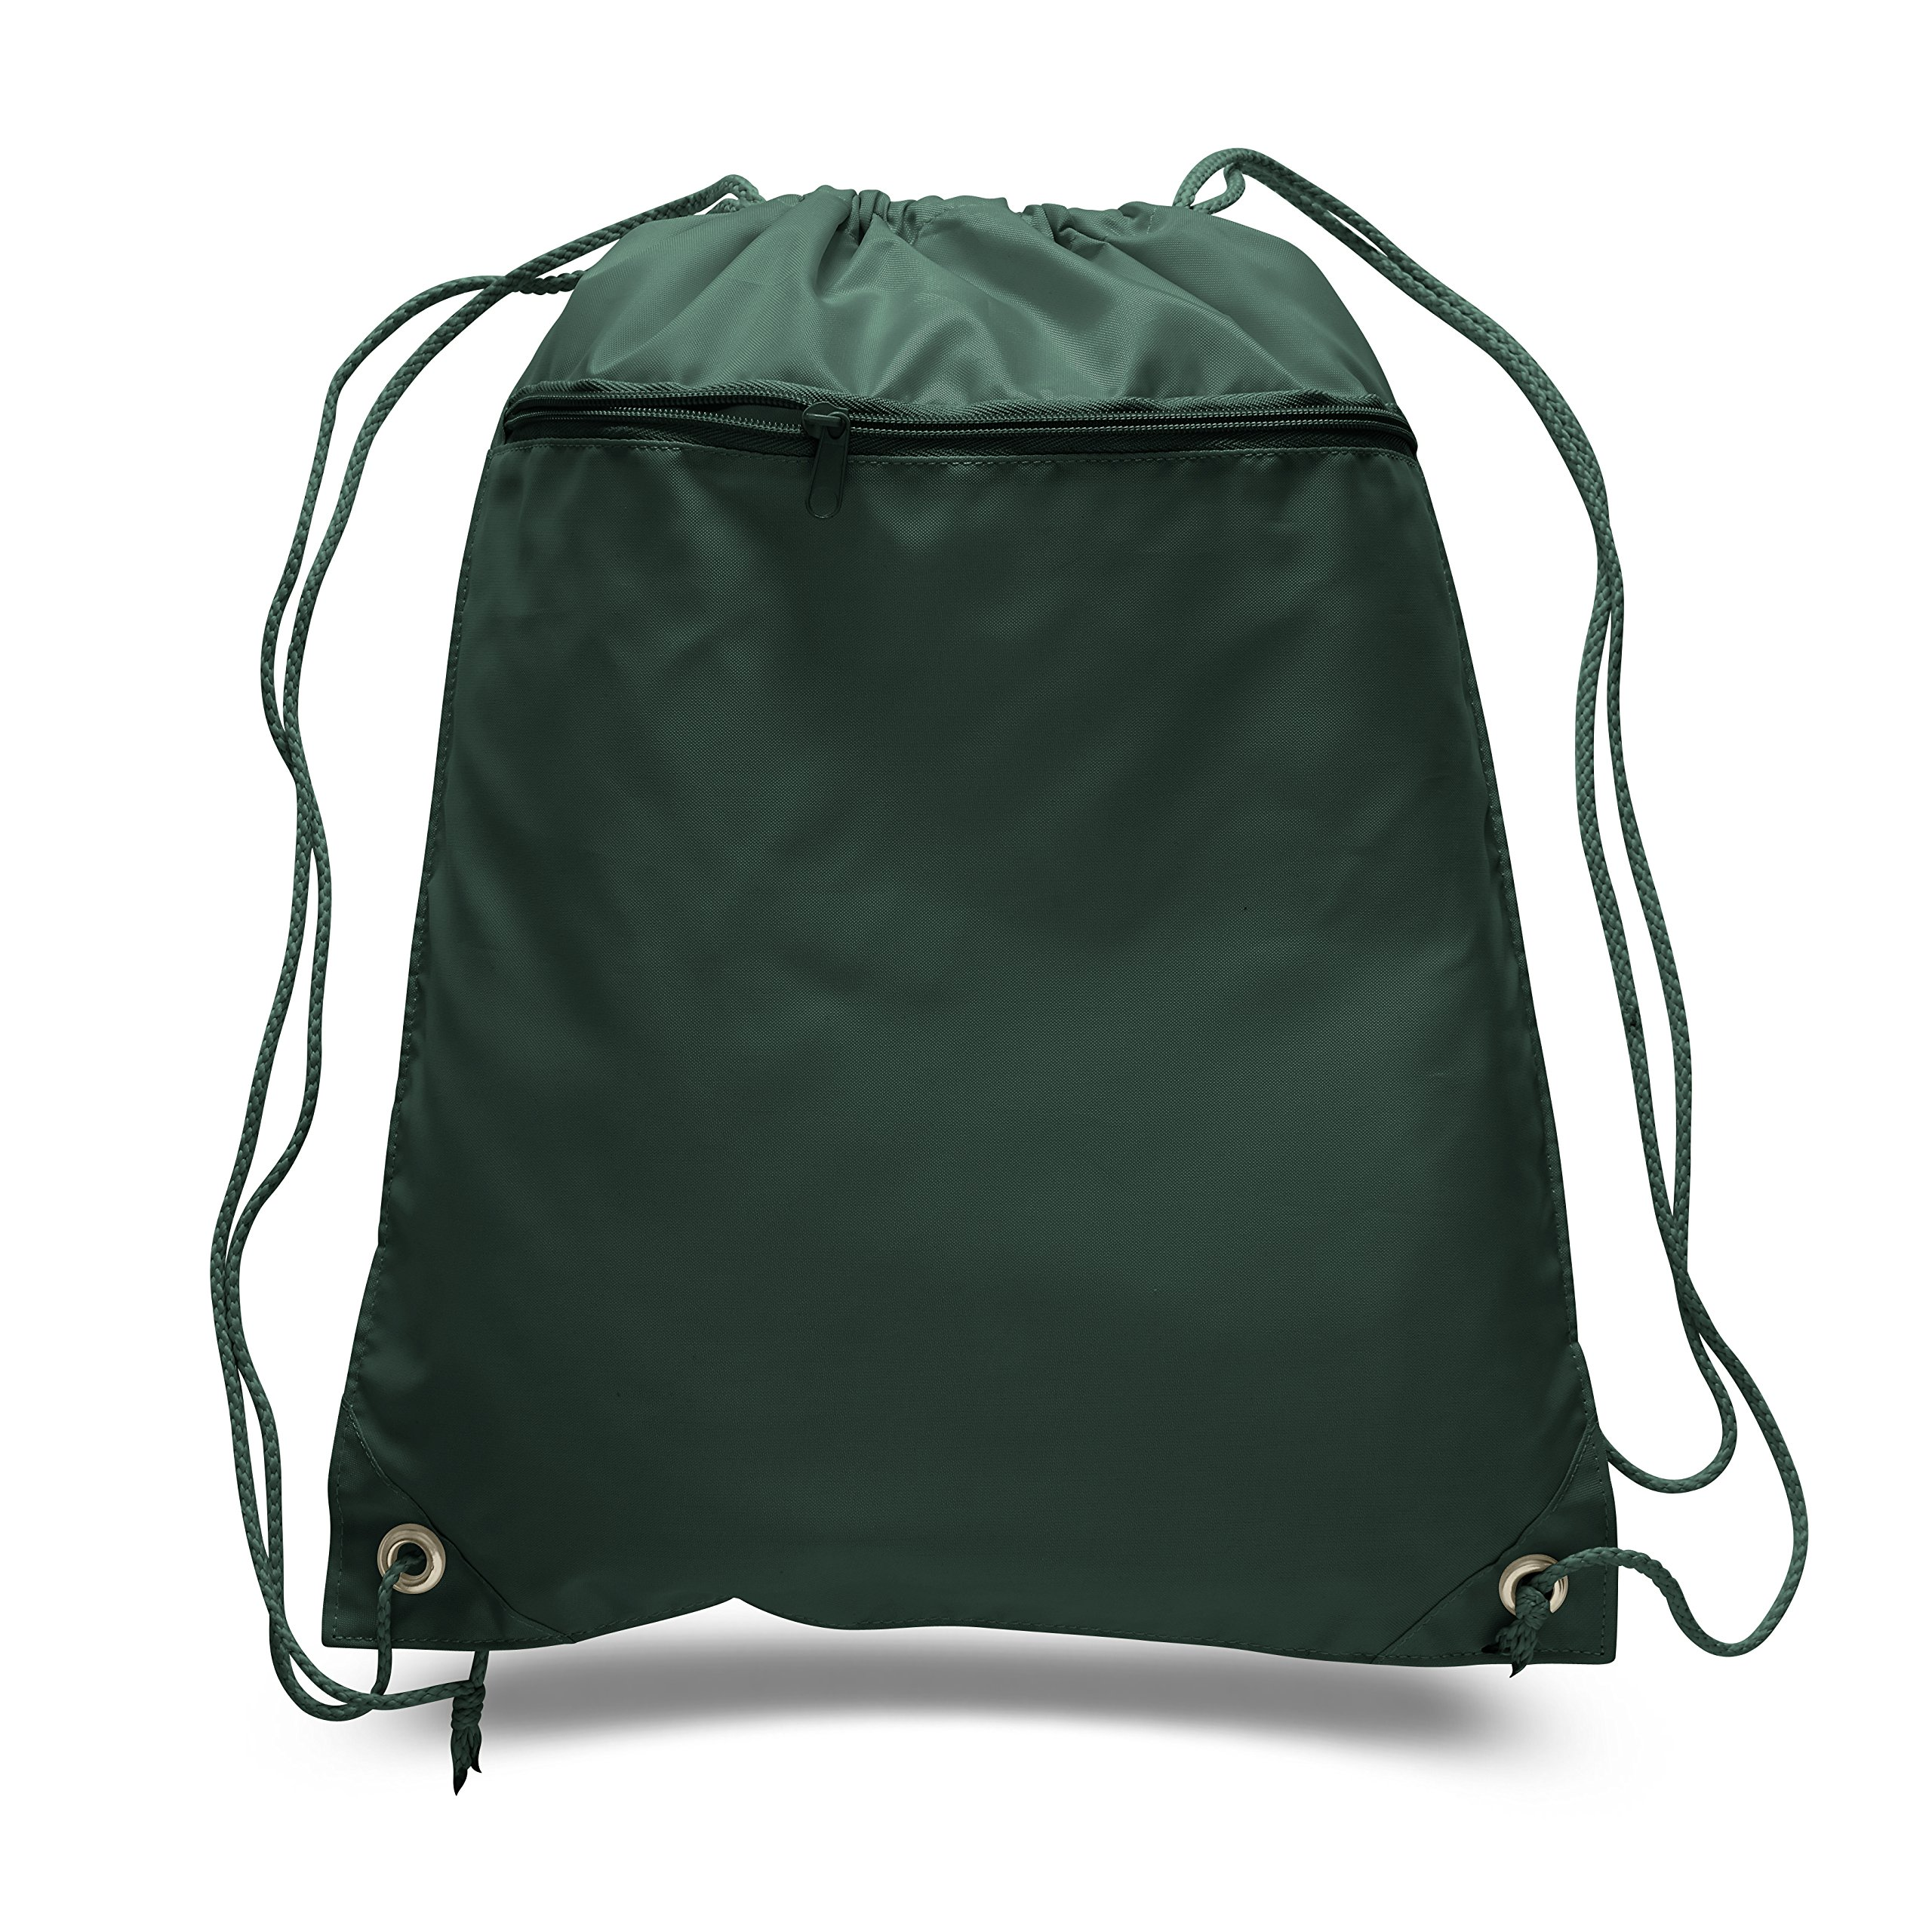 Cinch Sack Drawstring Tote Promotional Backpack Foldable Gym Sack Bag for Running, Shopping, Workout, Forest Green, Set of 24